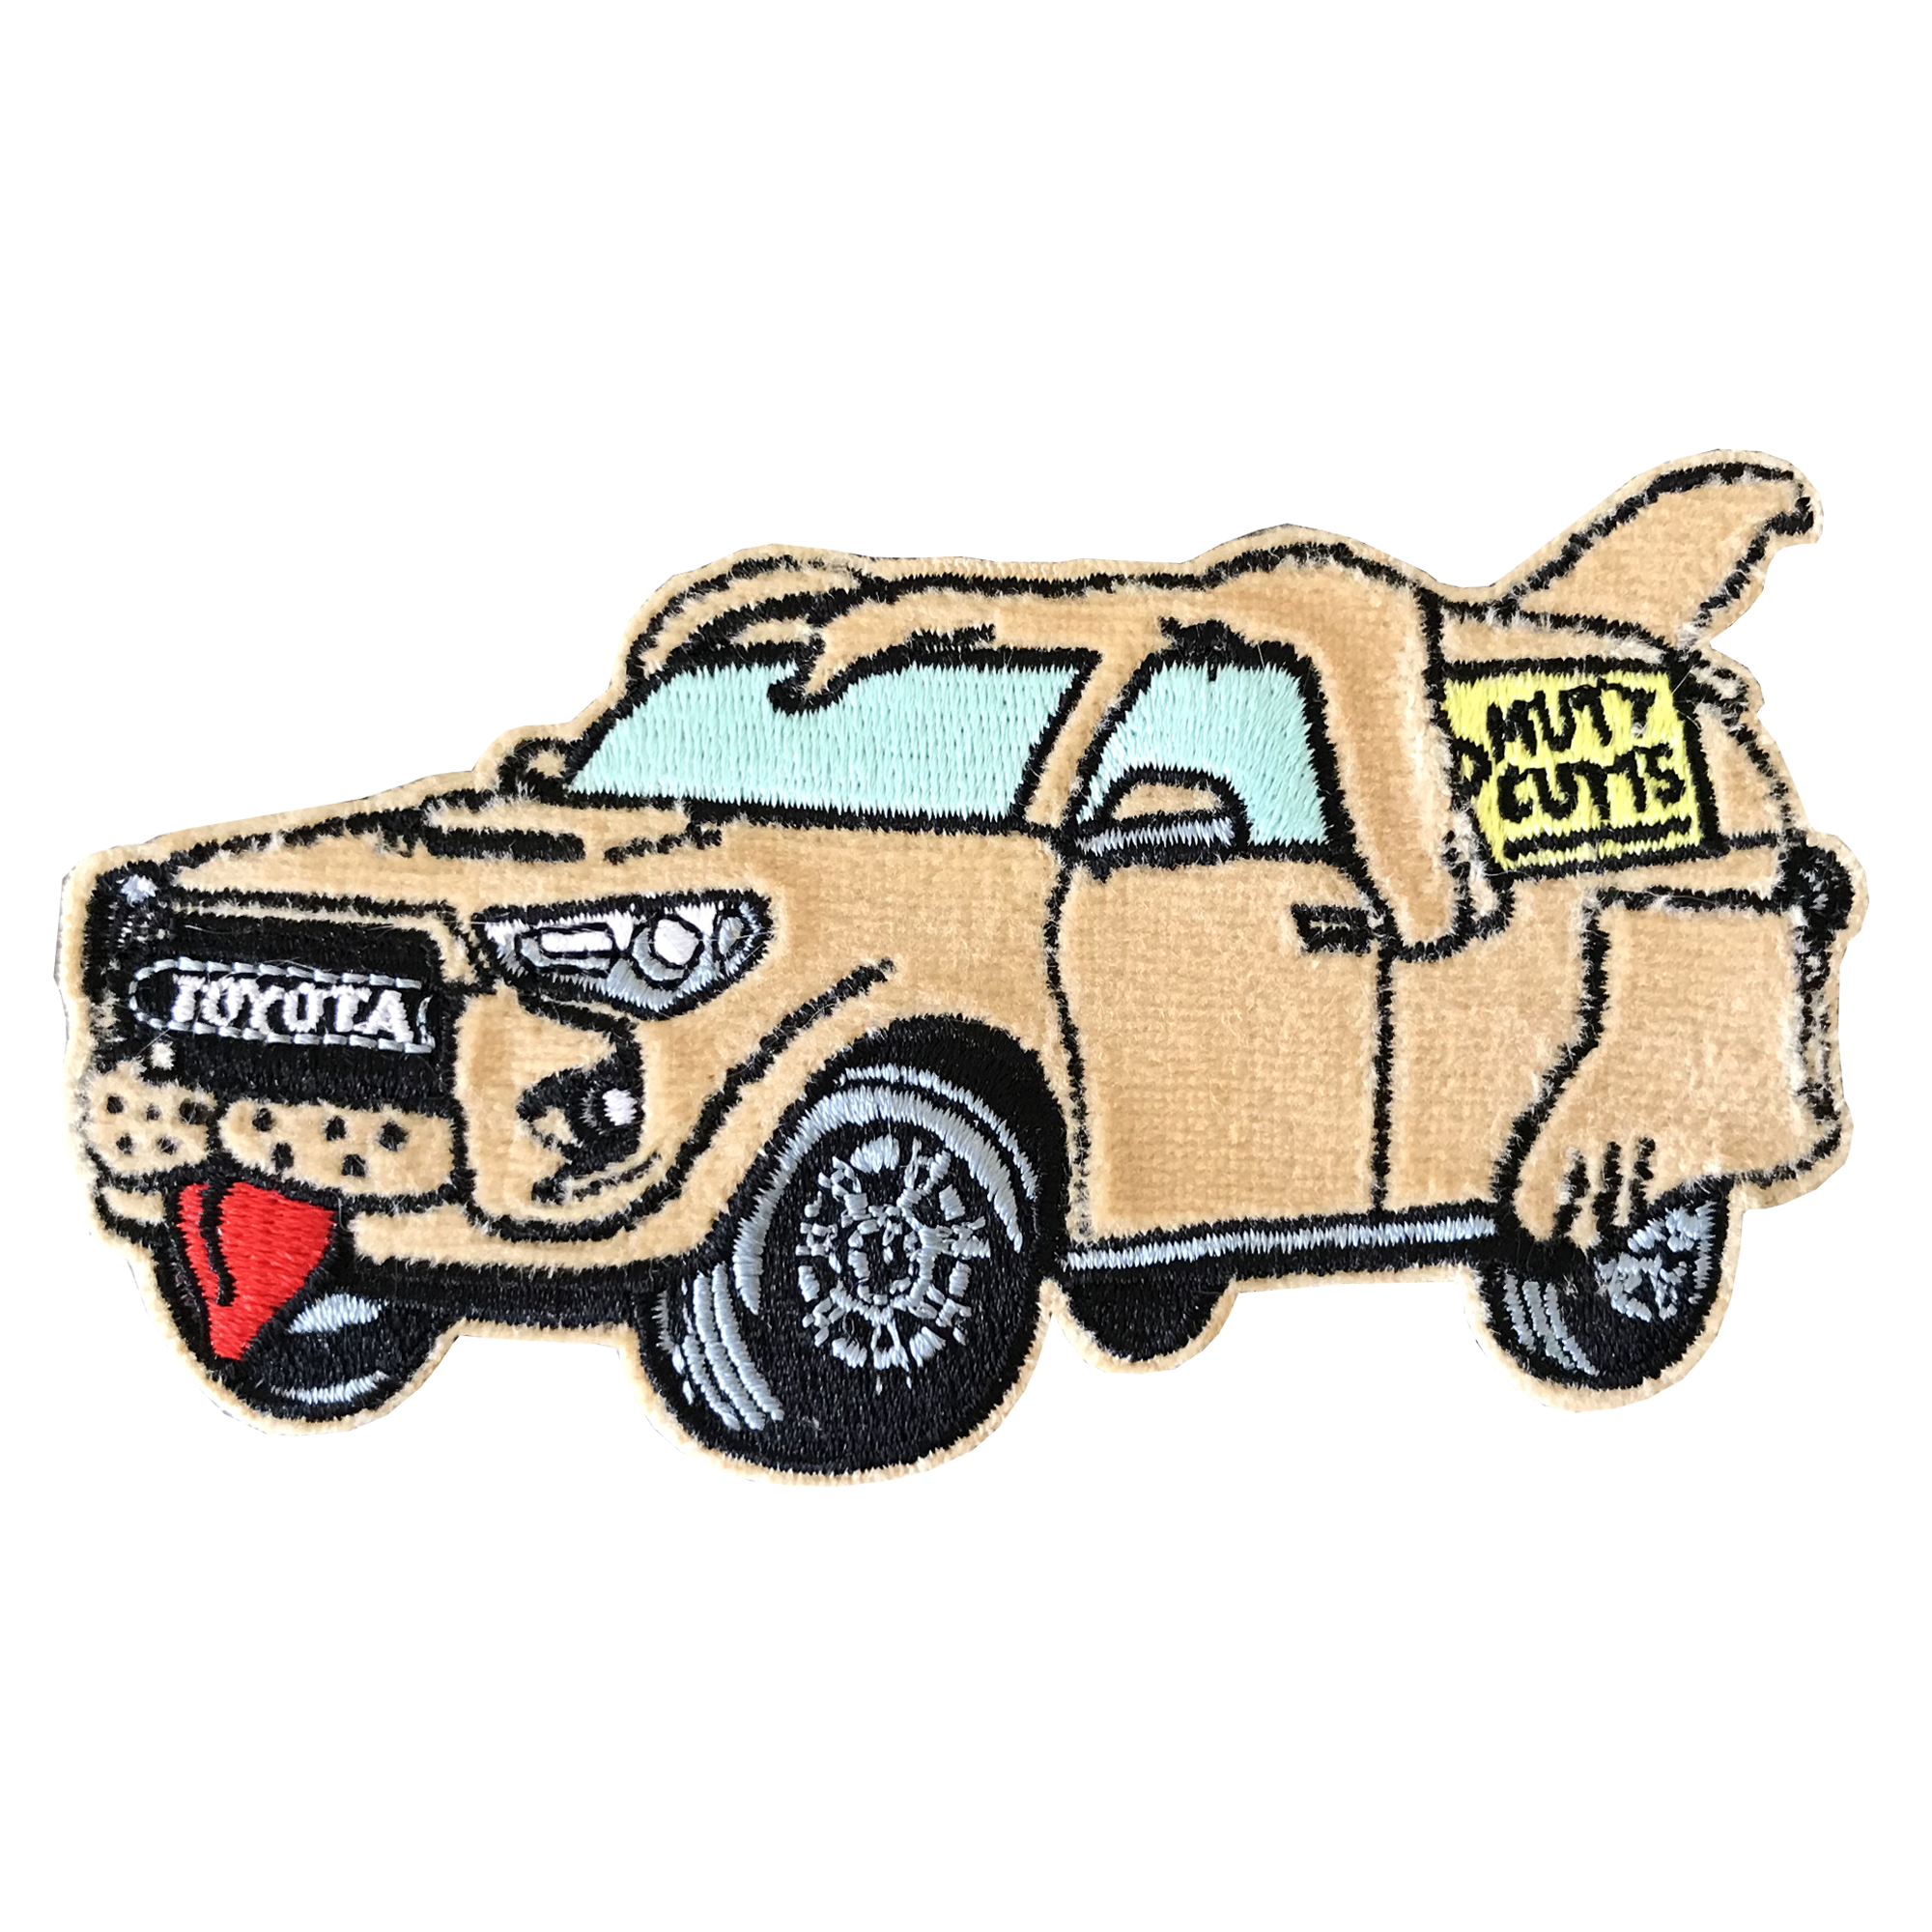 Dumb and Dumber 4Runner Patch